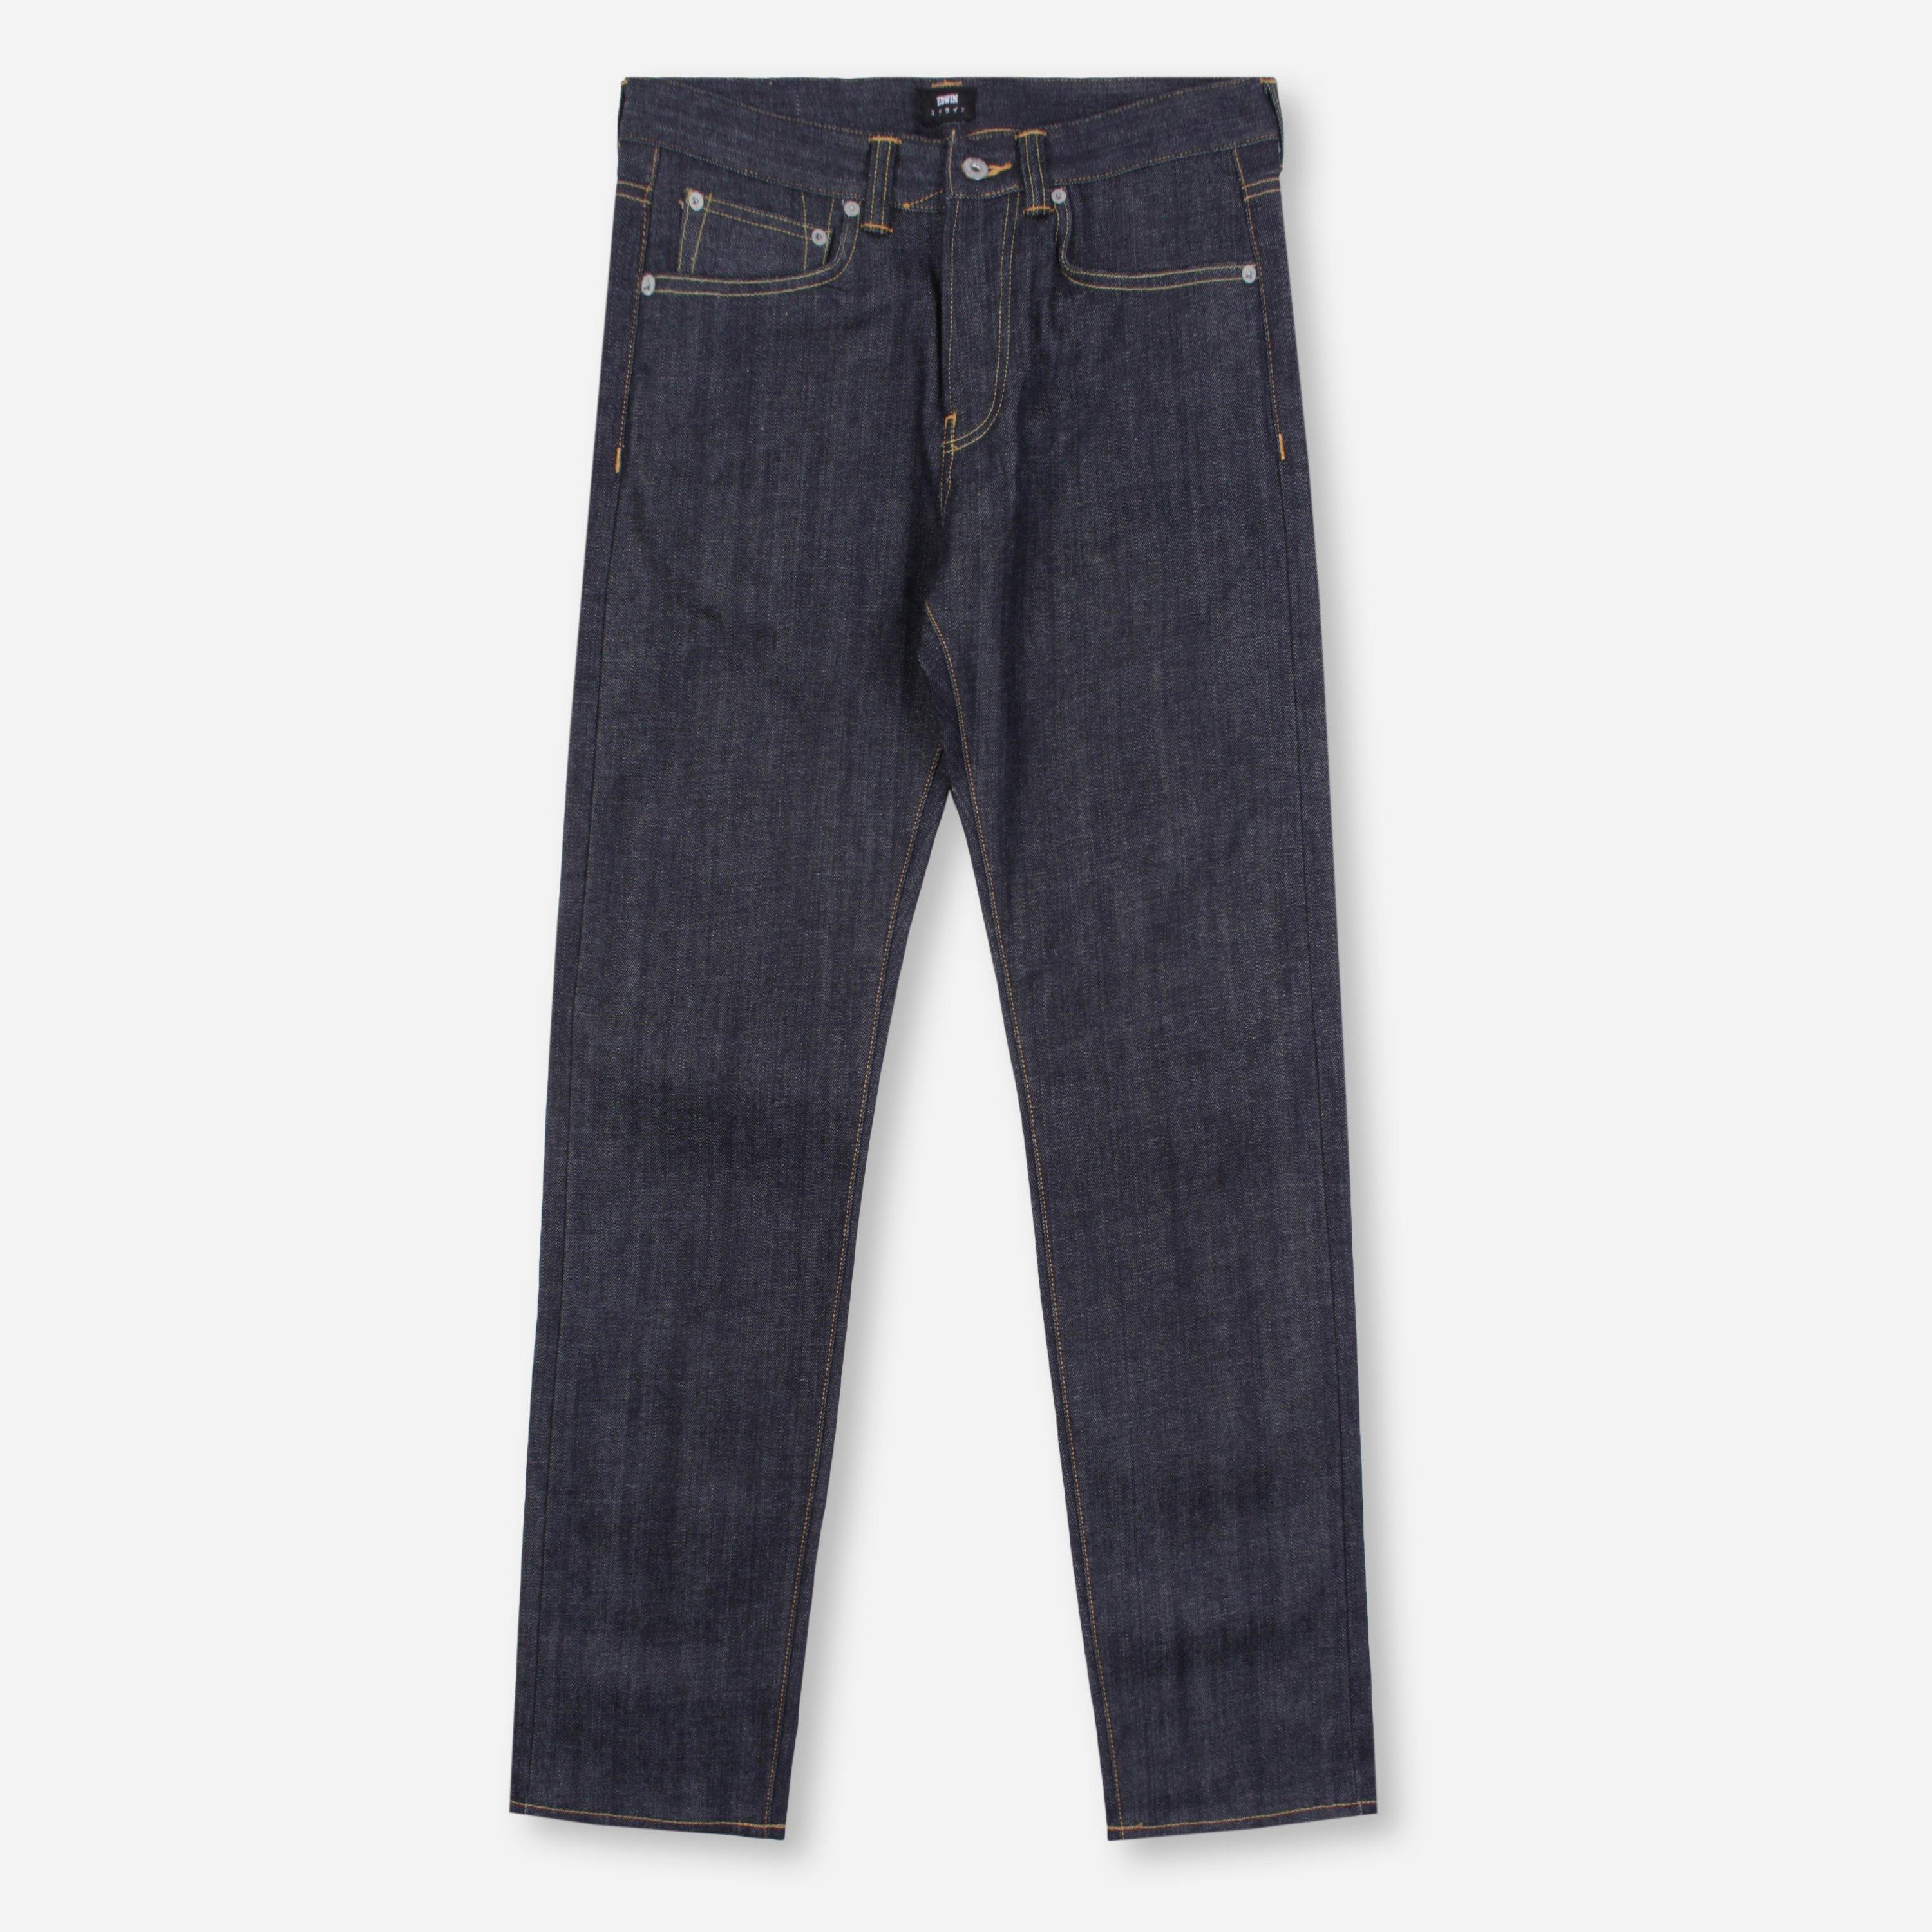 Edwin ED-80 Slim Red Listed 14oz Selvage Denim Unwashed